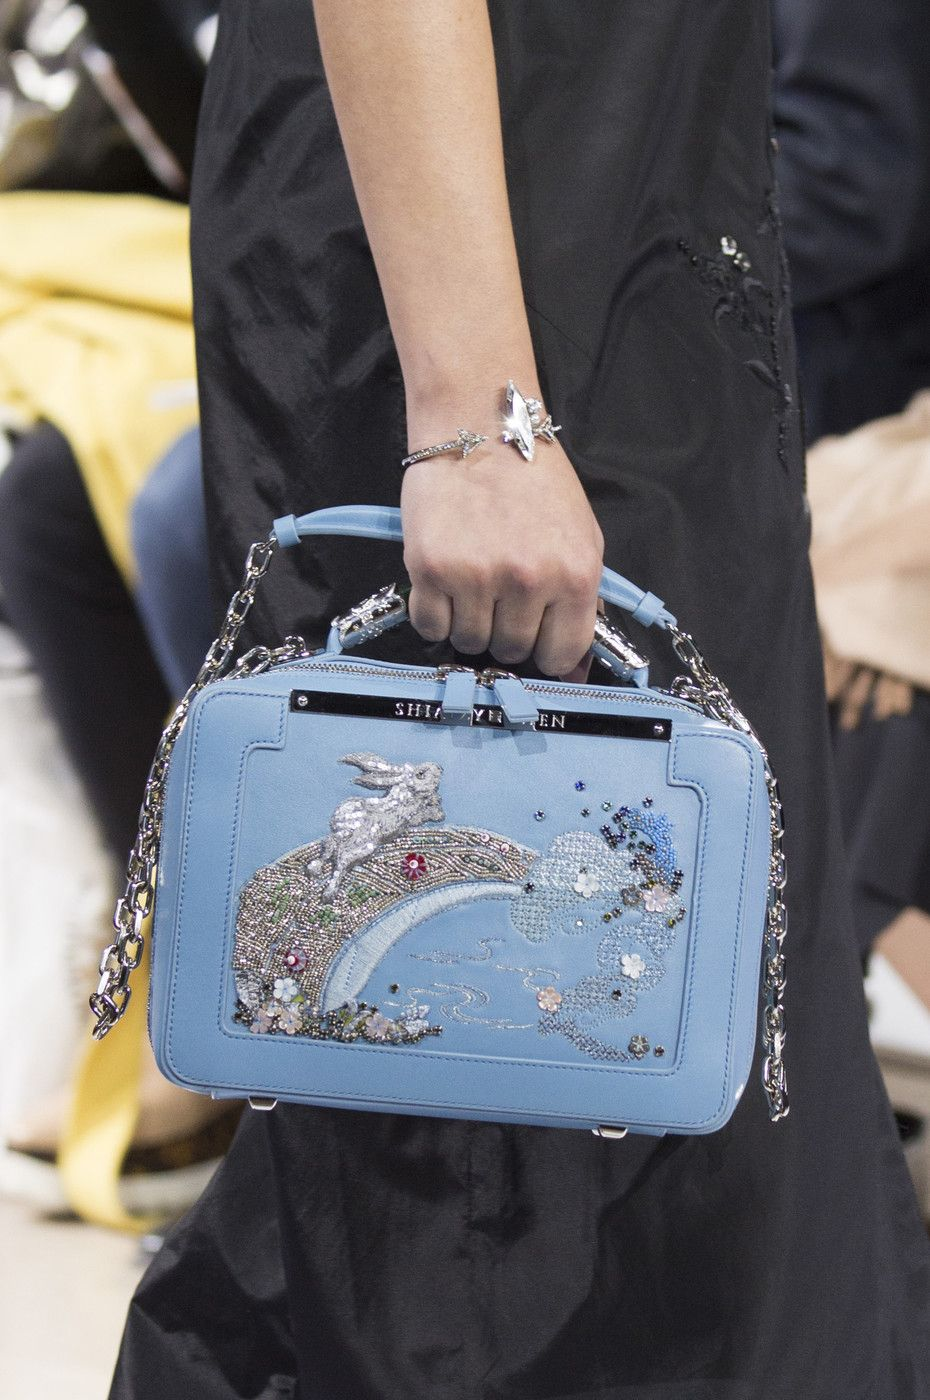 951ed8580 Shiatzy Chen at Paris Fashion Week Spring 2019 in 2019 | About bags ...